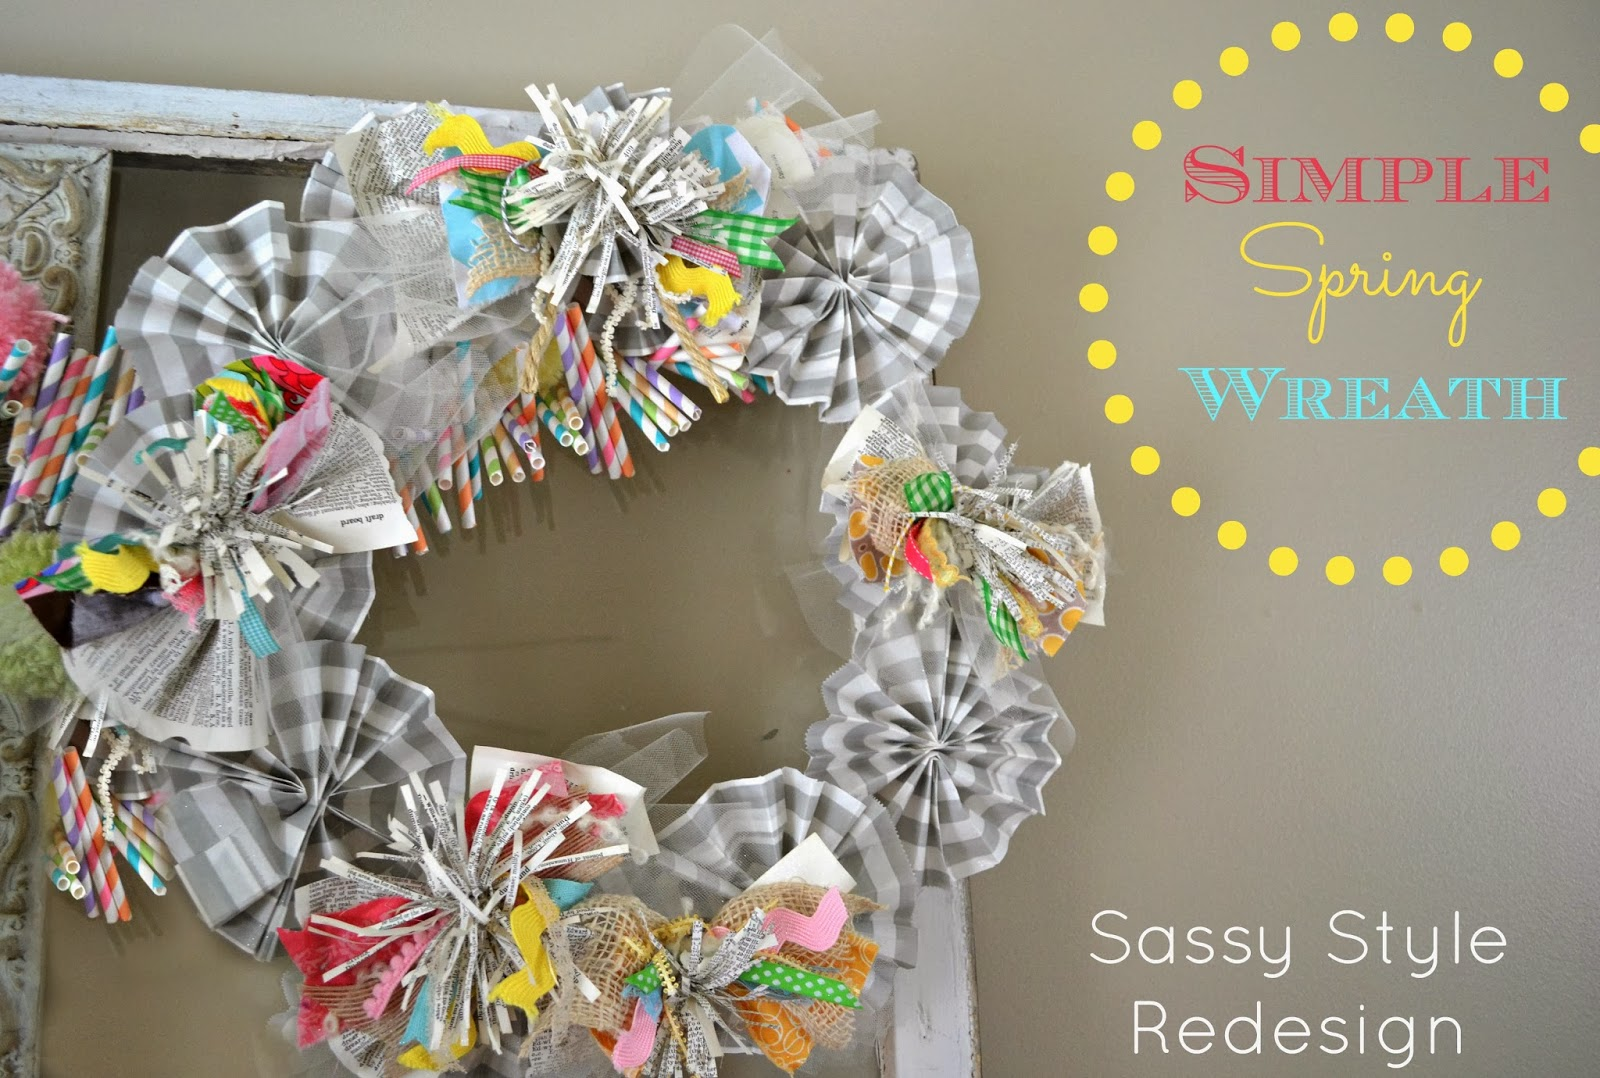 ... for more spring creations that you can make simple spring wreath